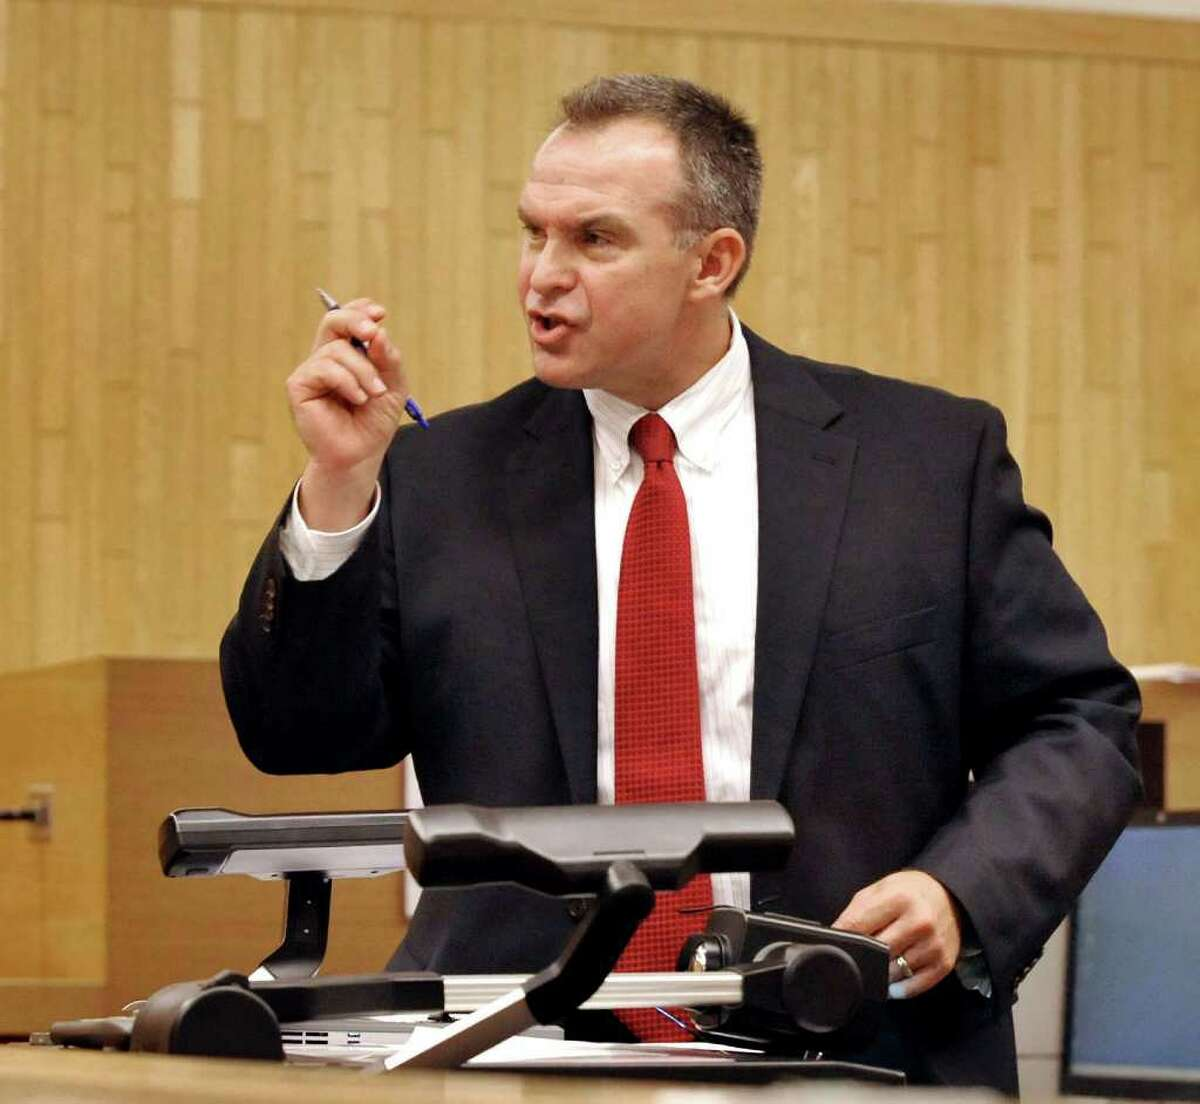 State's Attorney Stephen Sedensky makes his opening statement at Danbury Superior Court in the murder trial of Marash Gojcaj, Wednesday, Sept. 29, 2010 file photo.